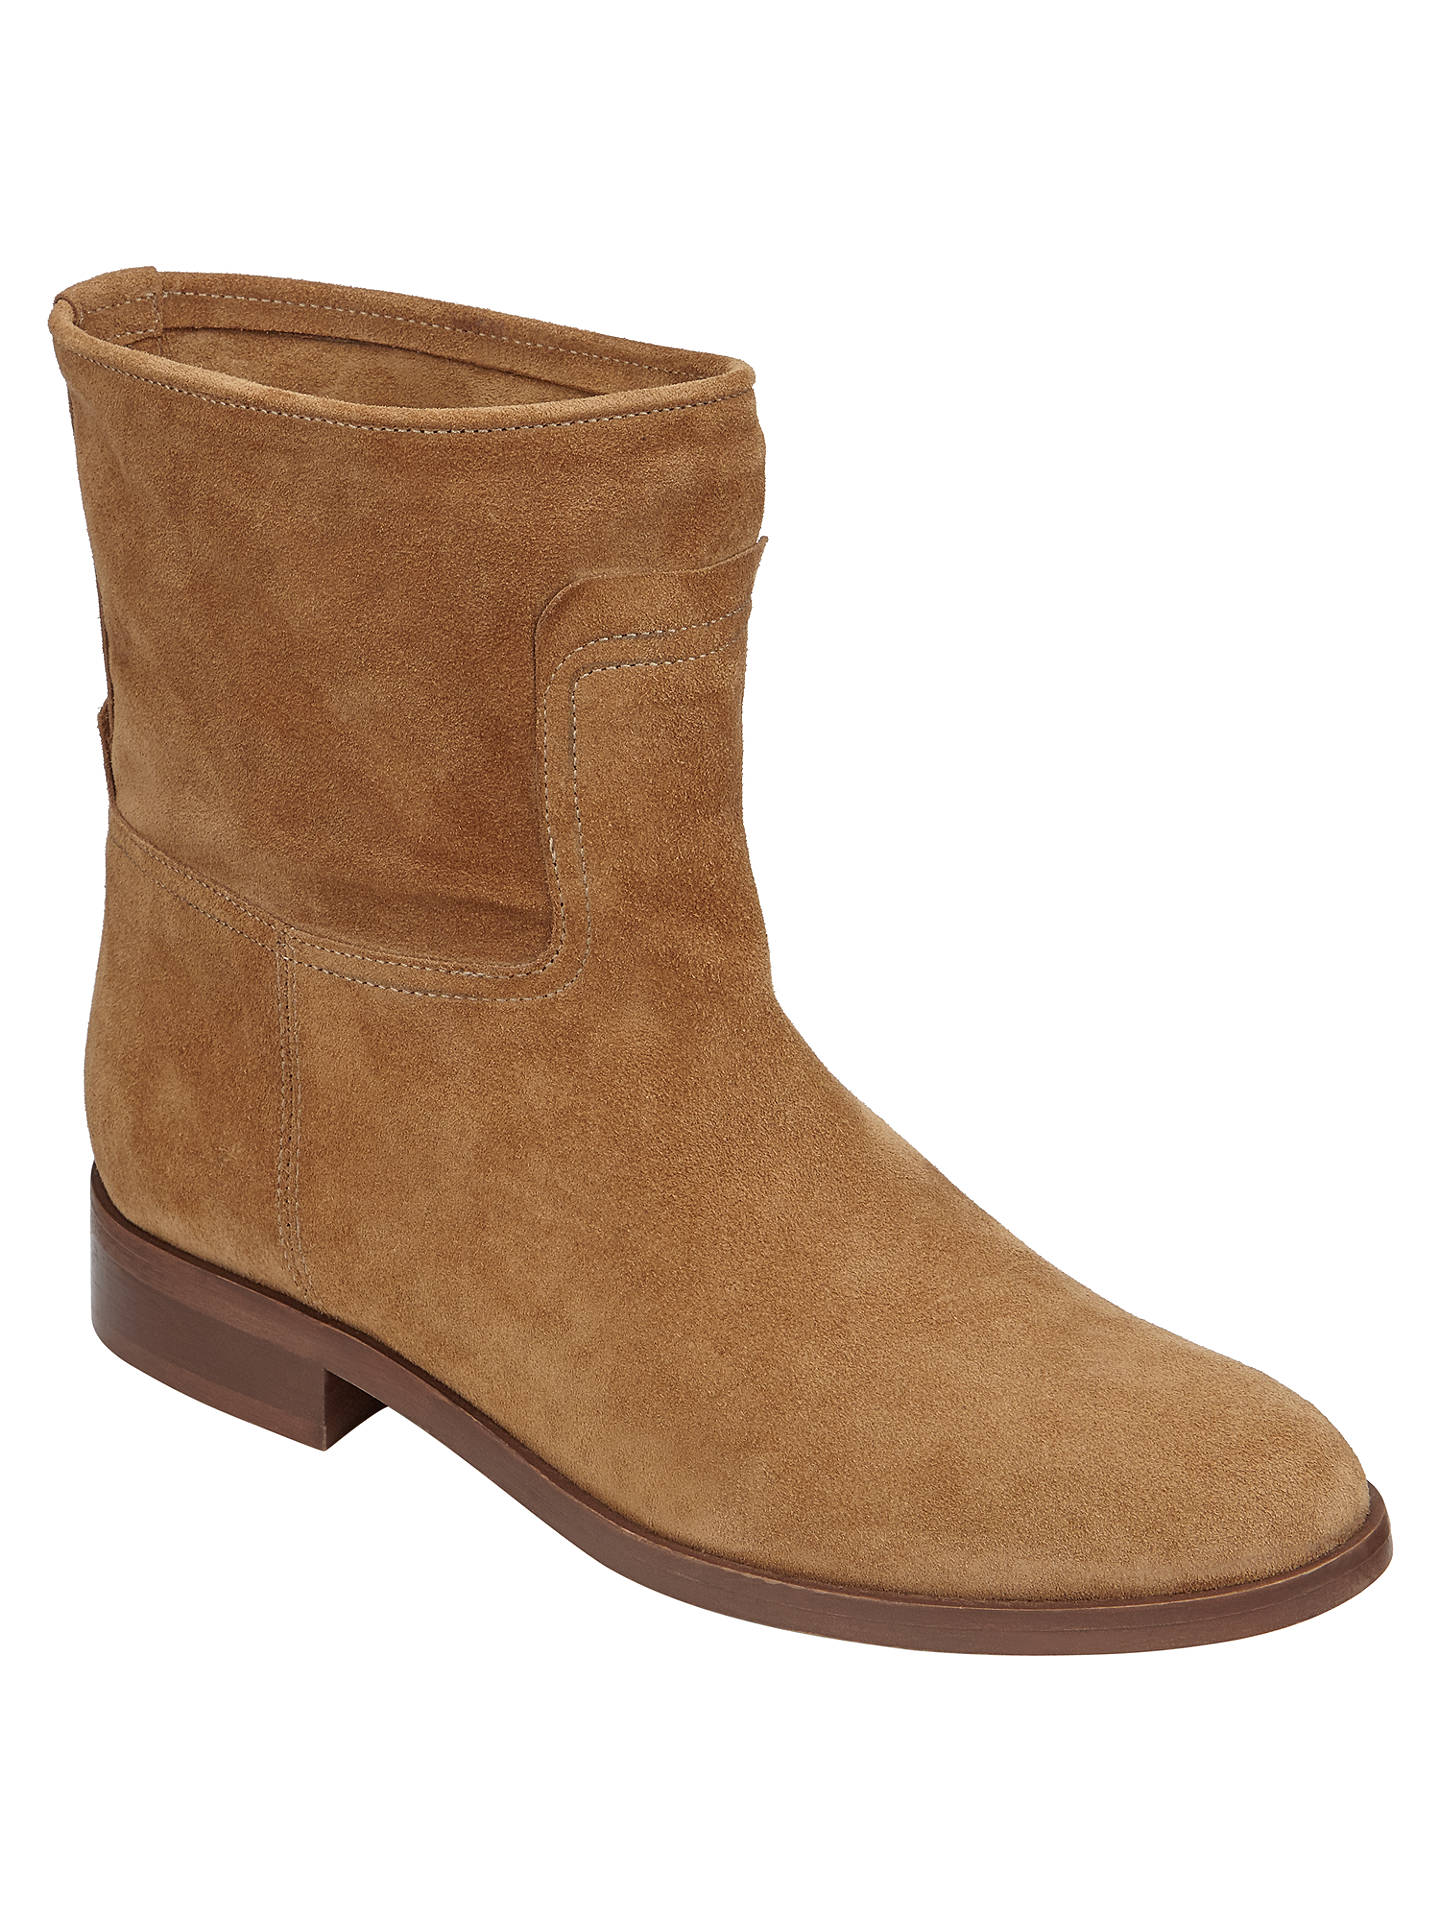 John Lewis Oprah Pull On Ankle Boots, Tan at John Lewis & Partners